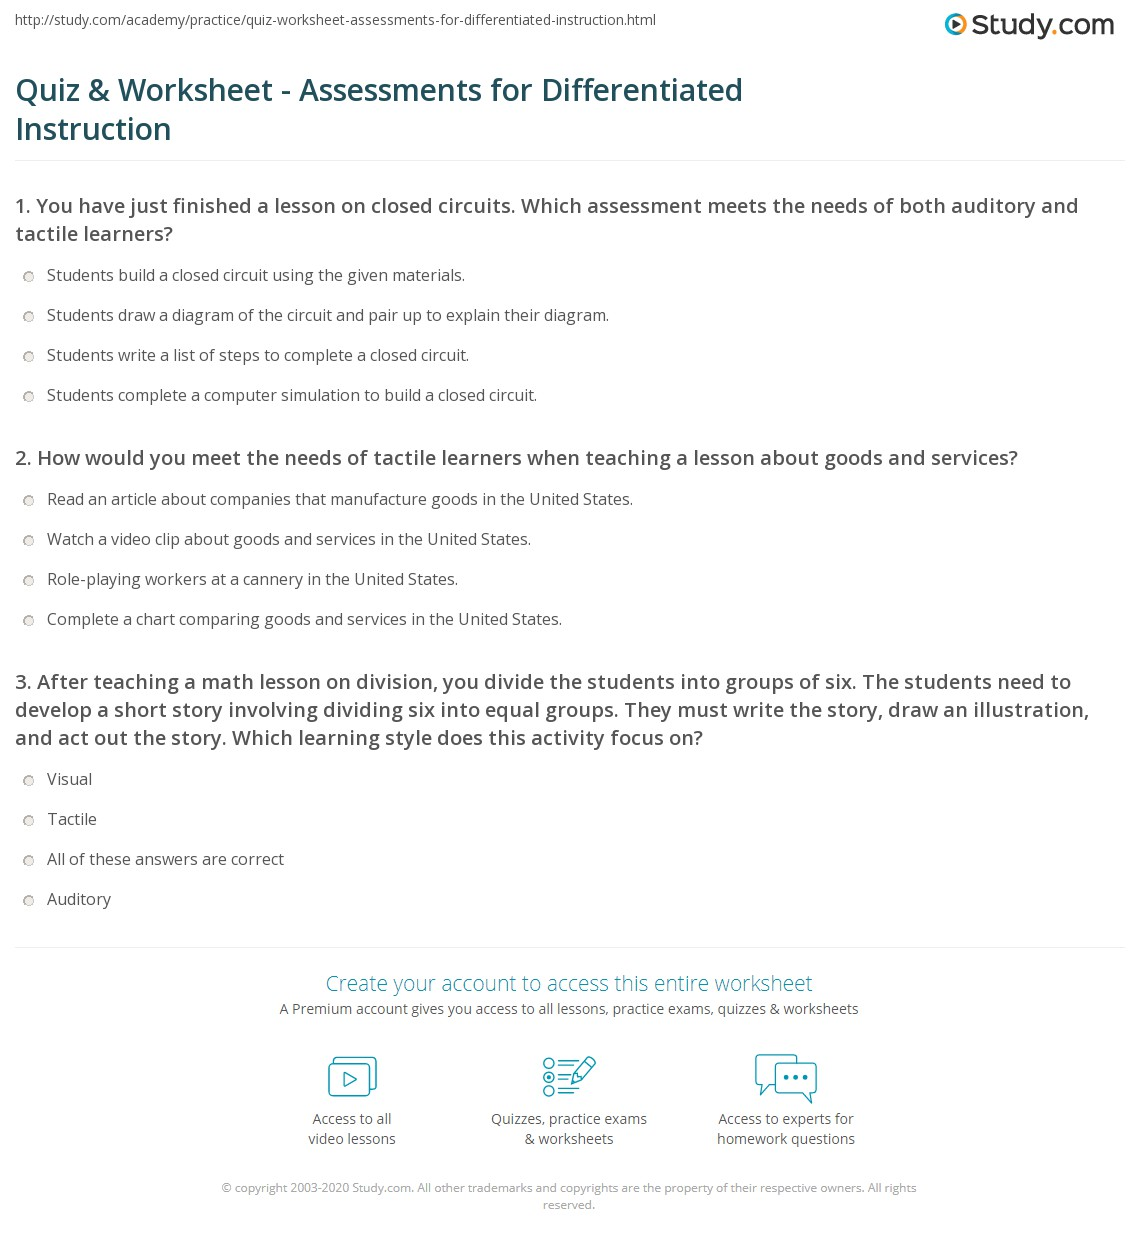 Quiz Worksheet Assessments For Differentiated Instruction